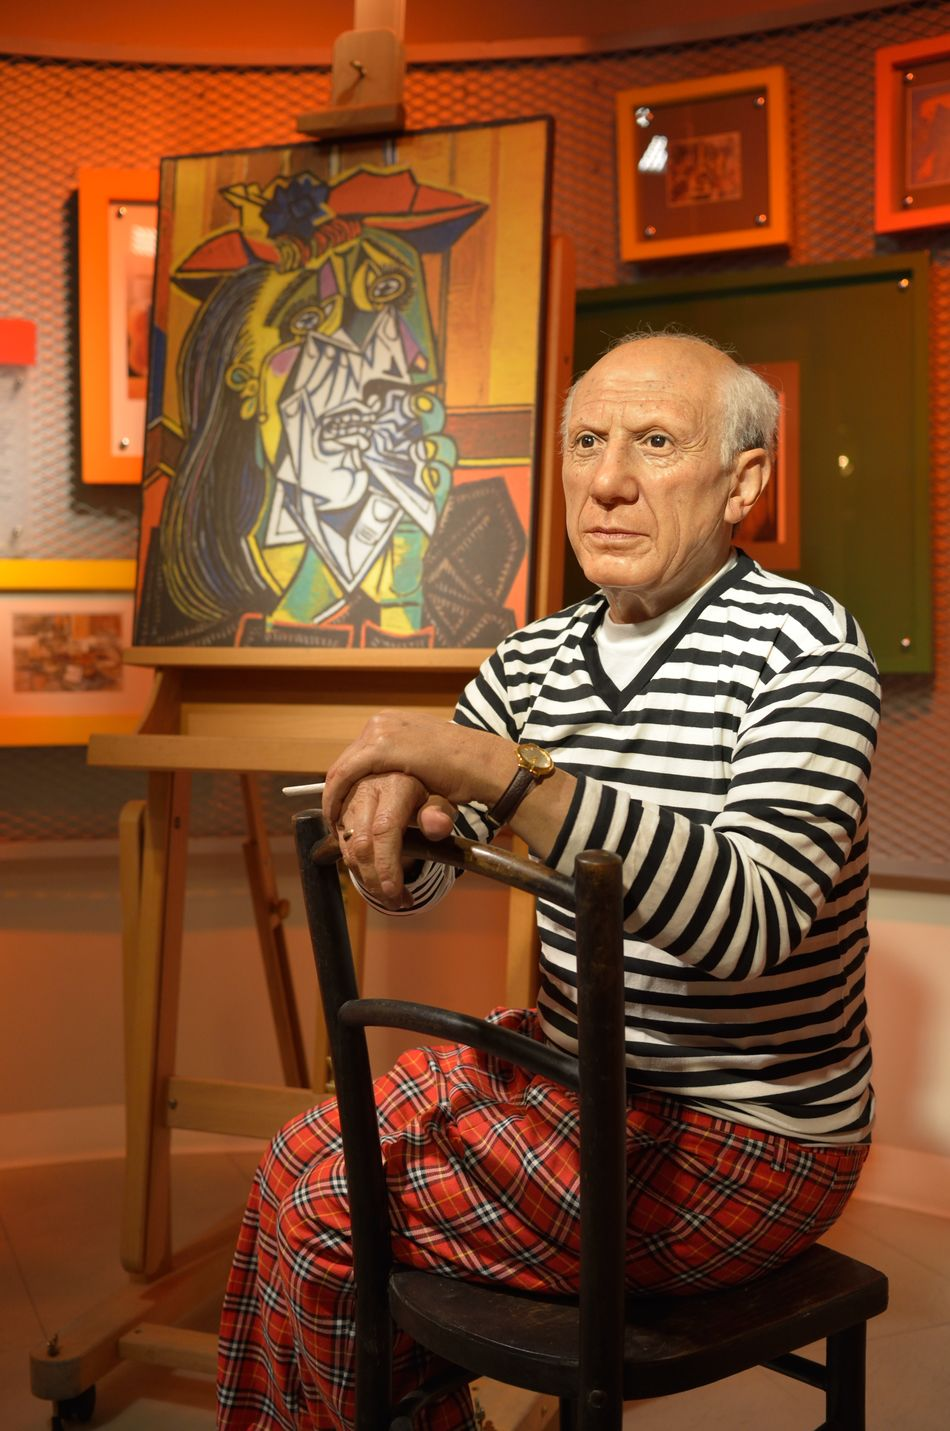 Pablo Picasso Absence Abundance Arrangement Business Chair Choice Close Up Design Fashion Floor Indoors  Large Group Of Objects Lifestyles Madame Tussauds Music Occupation Perspective Relaxation Sitting Table Wax Dolls Wax Museum Wood Wooden